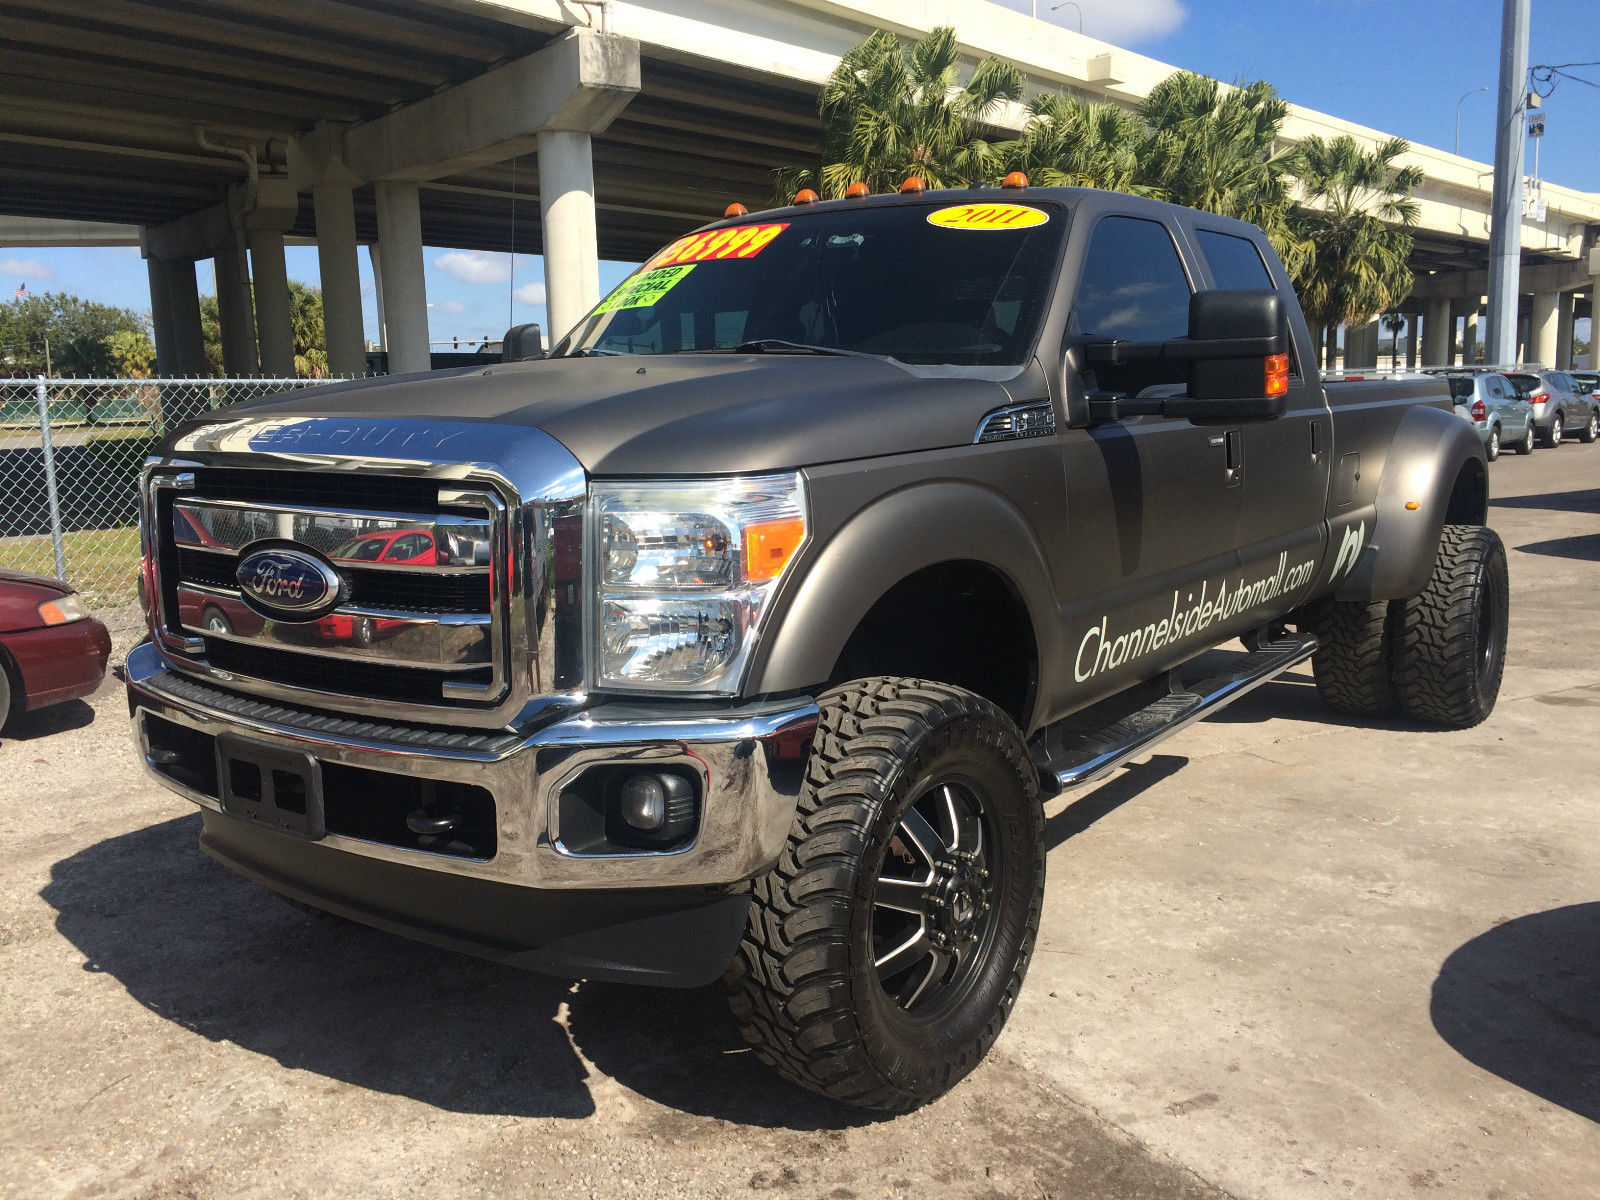 2017 F350 Dually New Car Release 2019 1970 Ford F 350 4x4 Lariat Super Duty Crew Cab 44